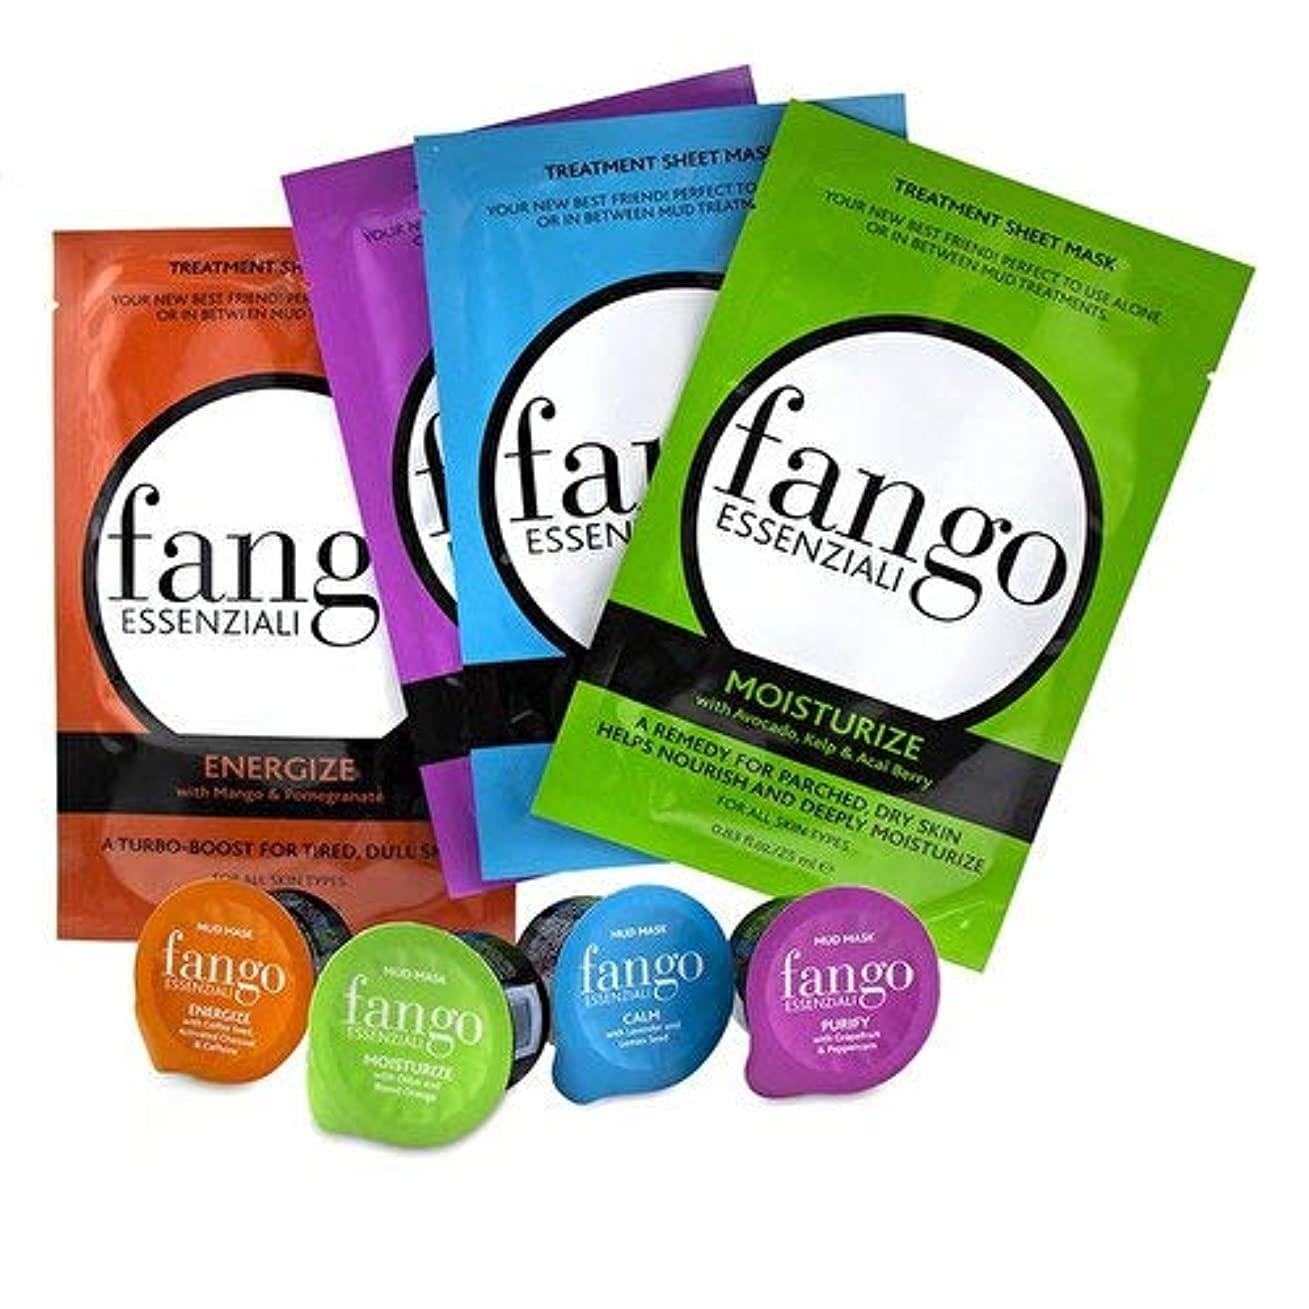 中止しますペース火山のボルゲーゼ The Fango Essenziali Collection (4x Sheet Mask 25ml/0.83oz, 4x Mud Mask 25g/0.89oz) -並行輸入品